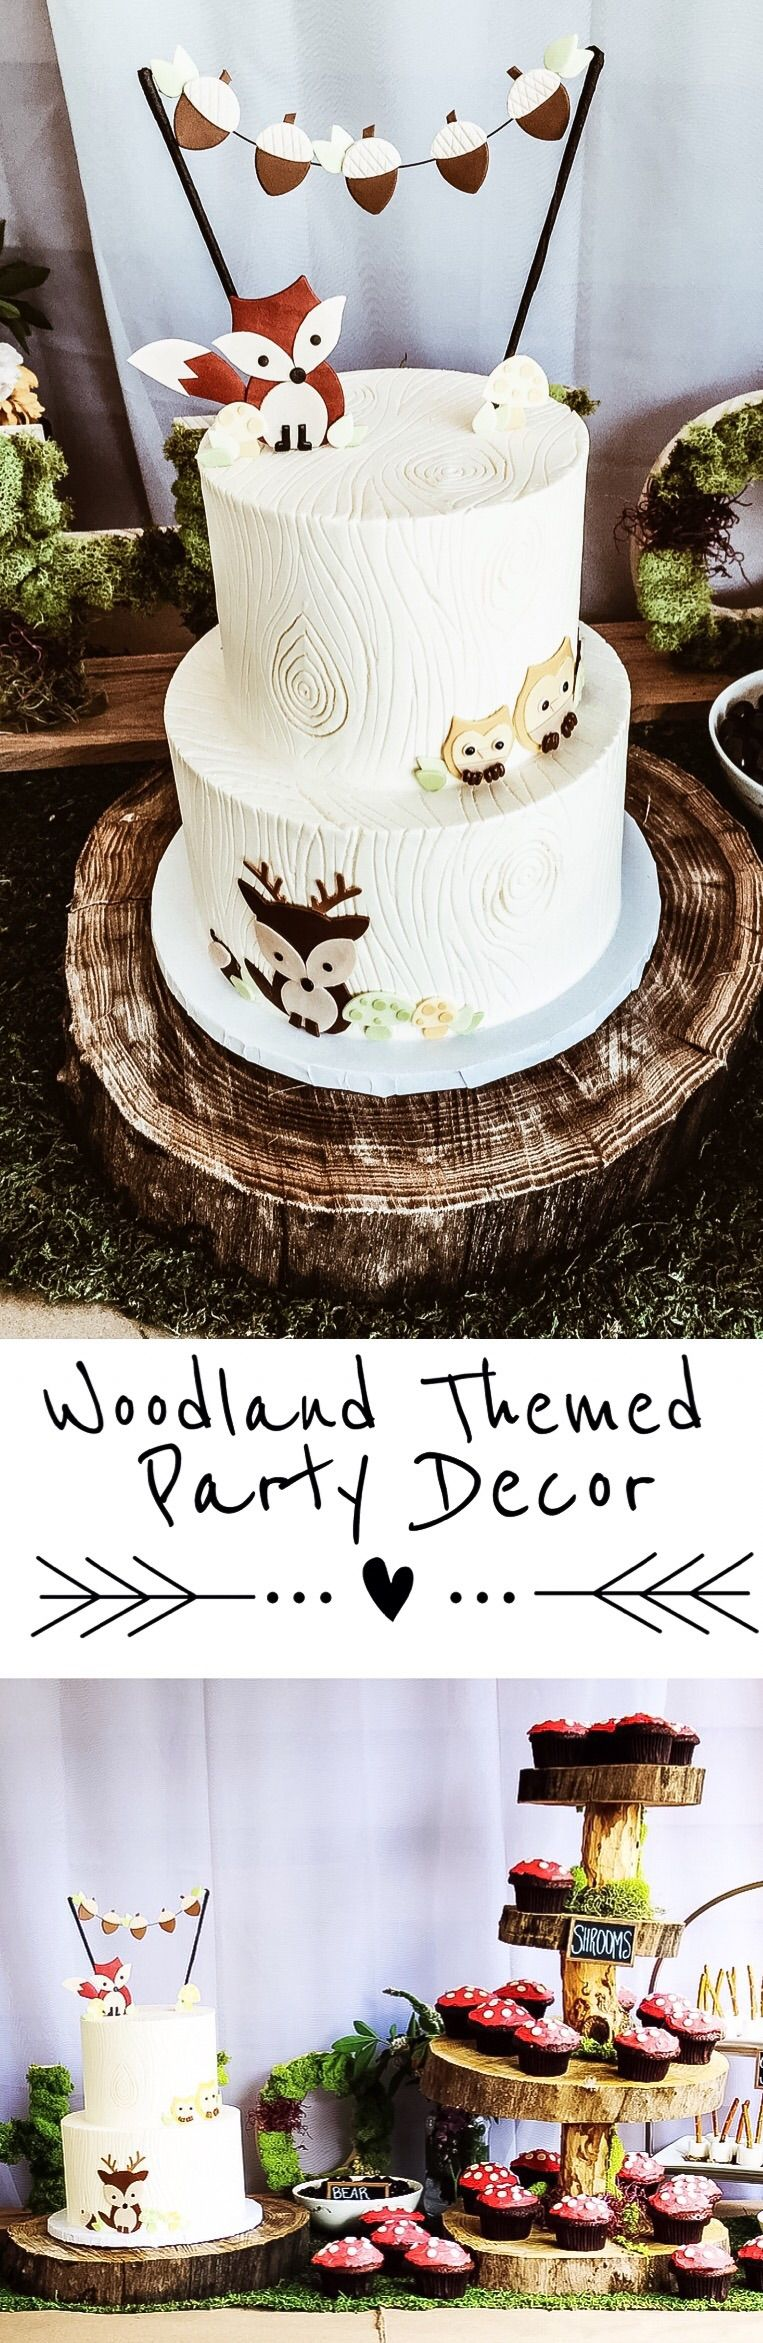 Woodland Themed Party Decor for a boy